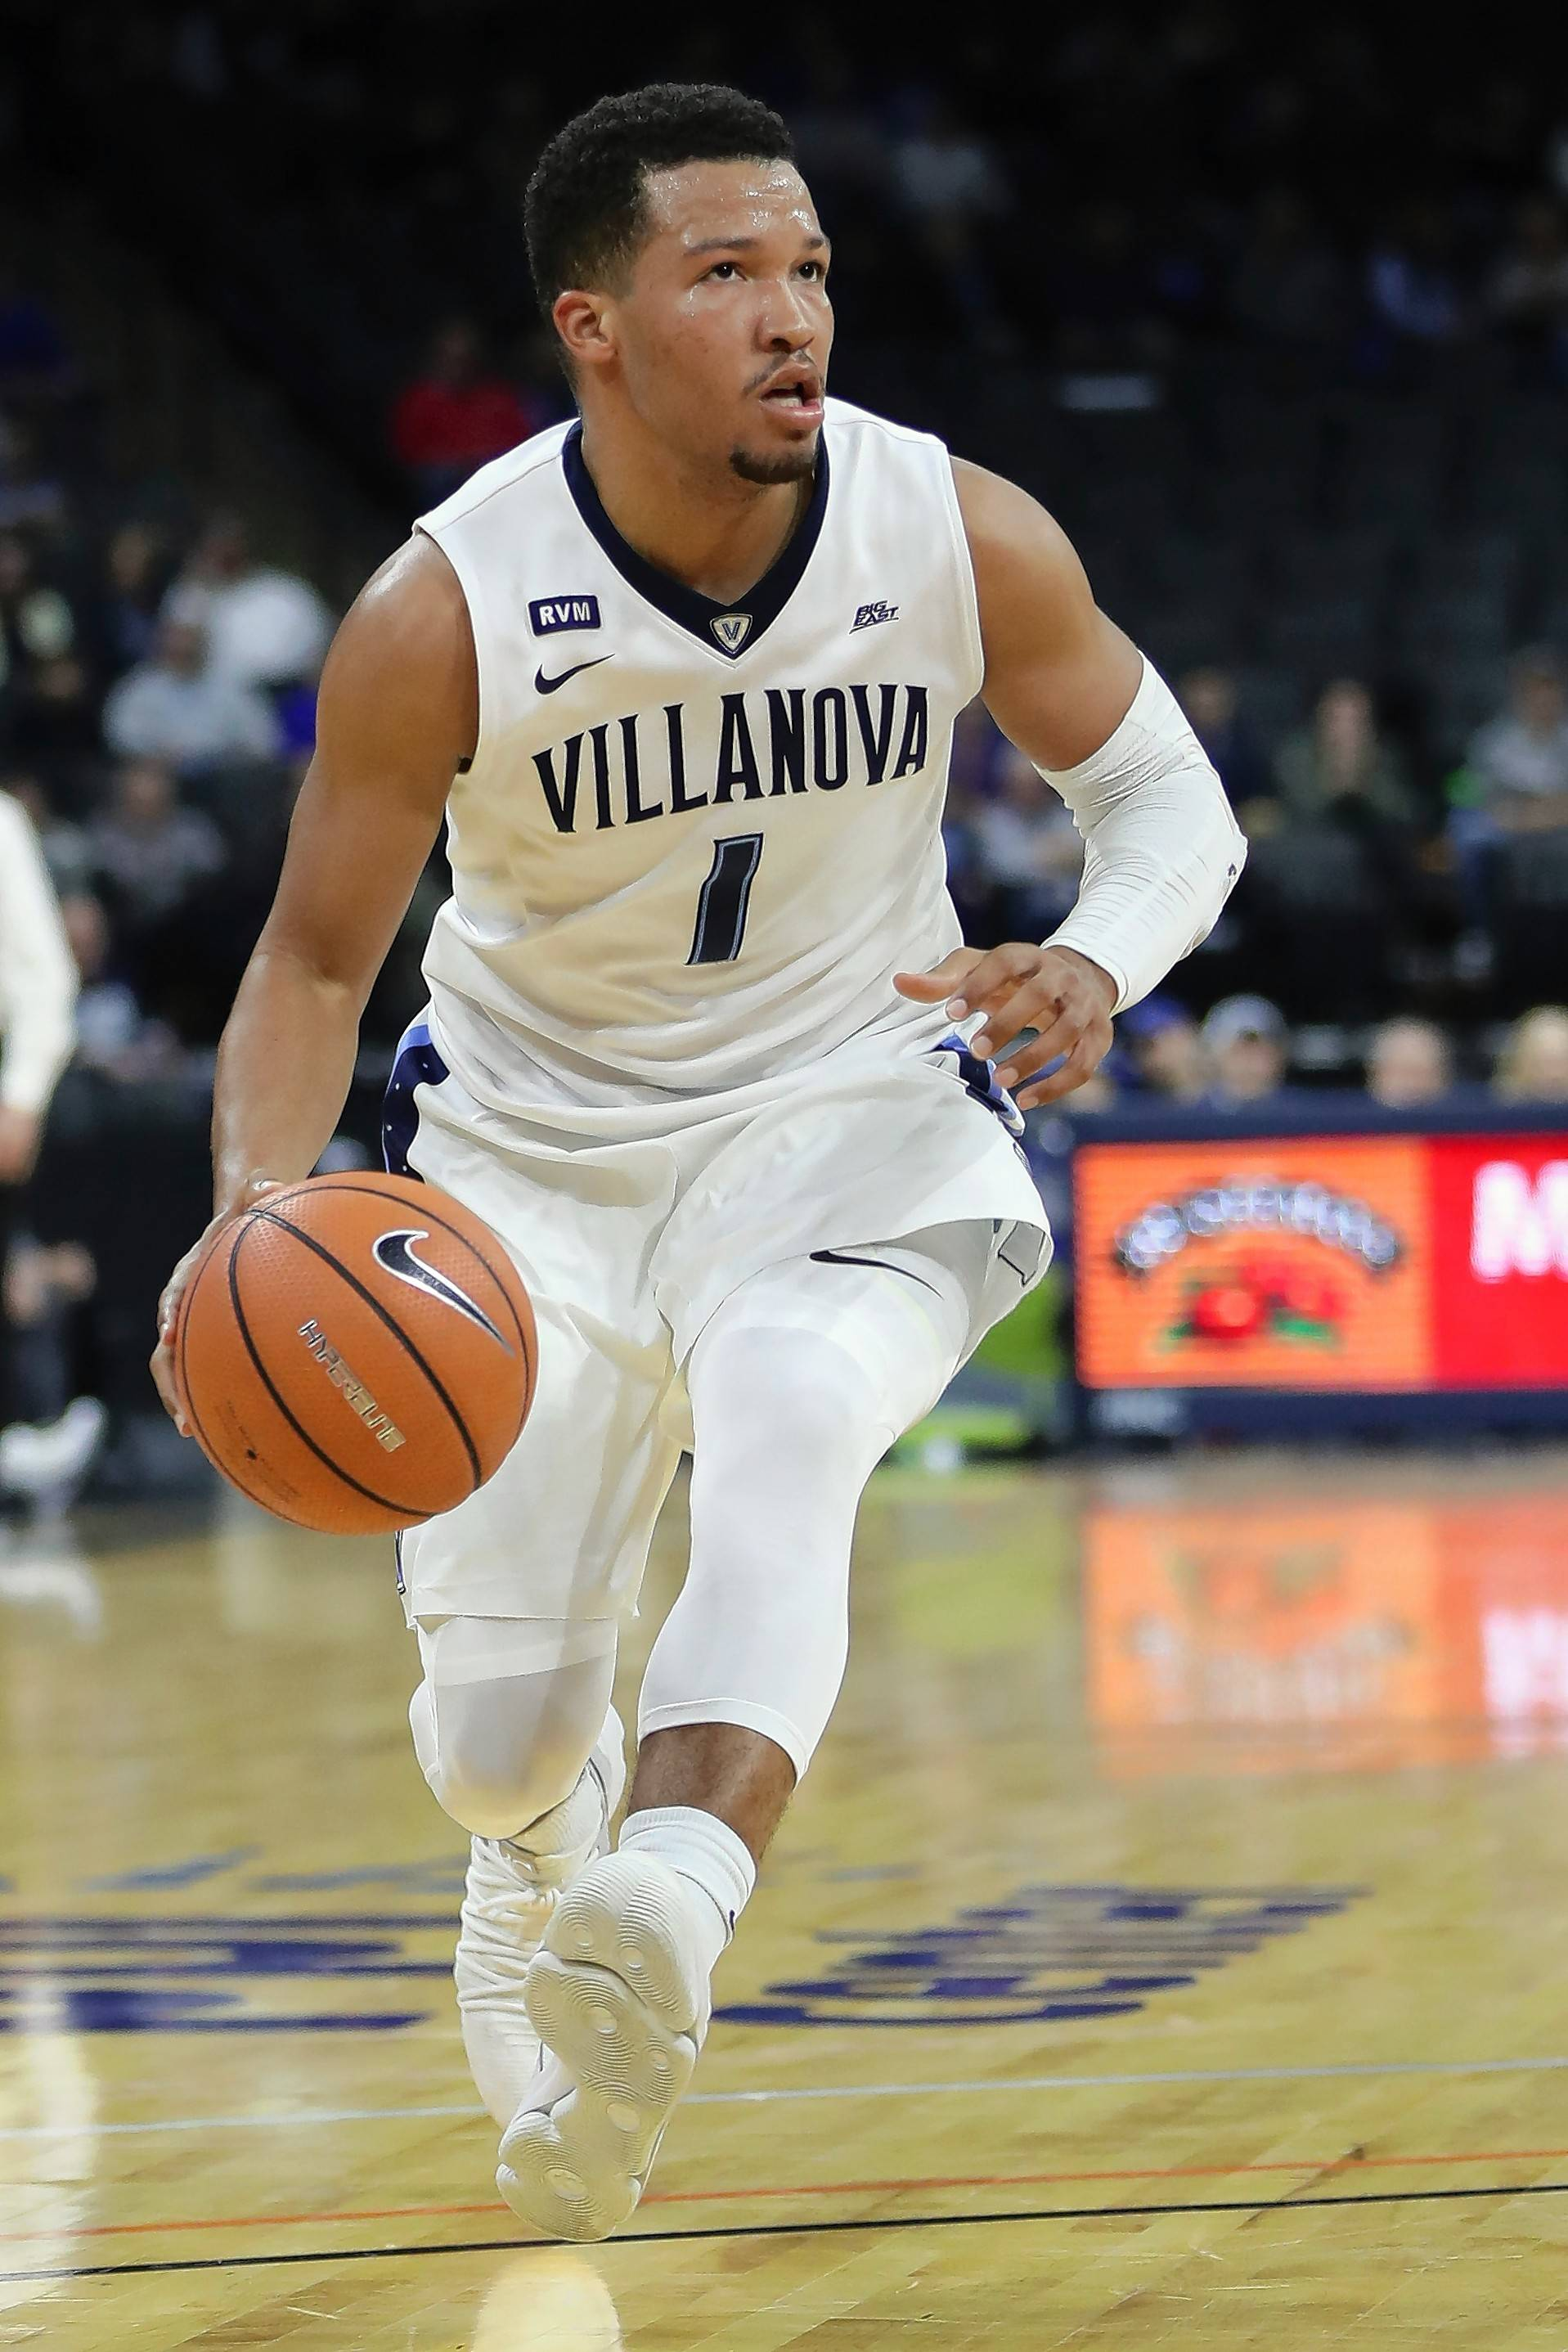 Villanova's Jalen Brunson, a native of Lincolnshire, was named tournament MVP at the Battle 4 Atlantis. His team is 6-0 and ranked No. 4 in the country.